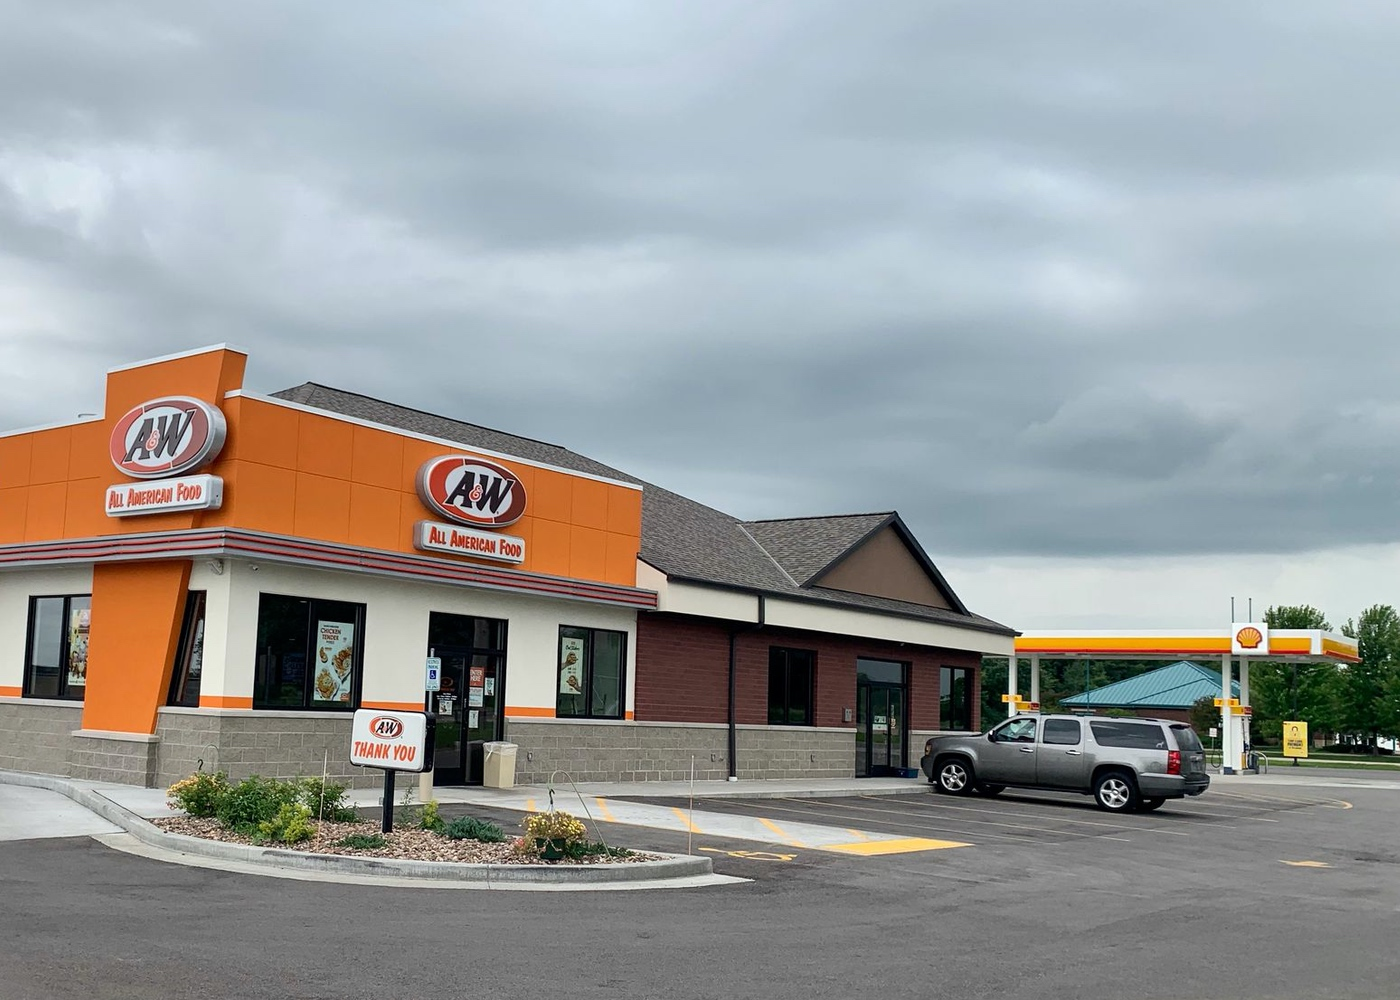 Exterior of A&W Restaurant in Winneconne, Wisconsin connected to a Shell gas station.